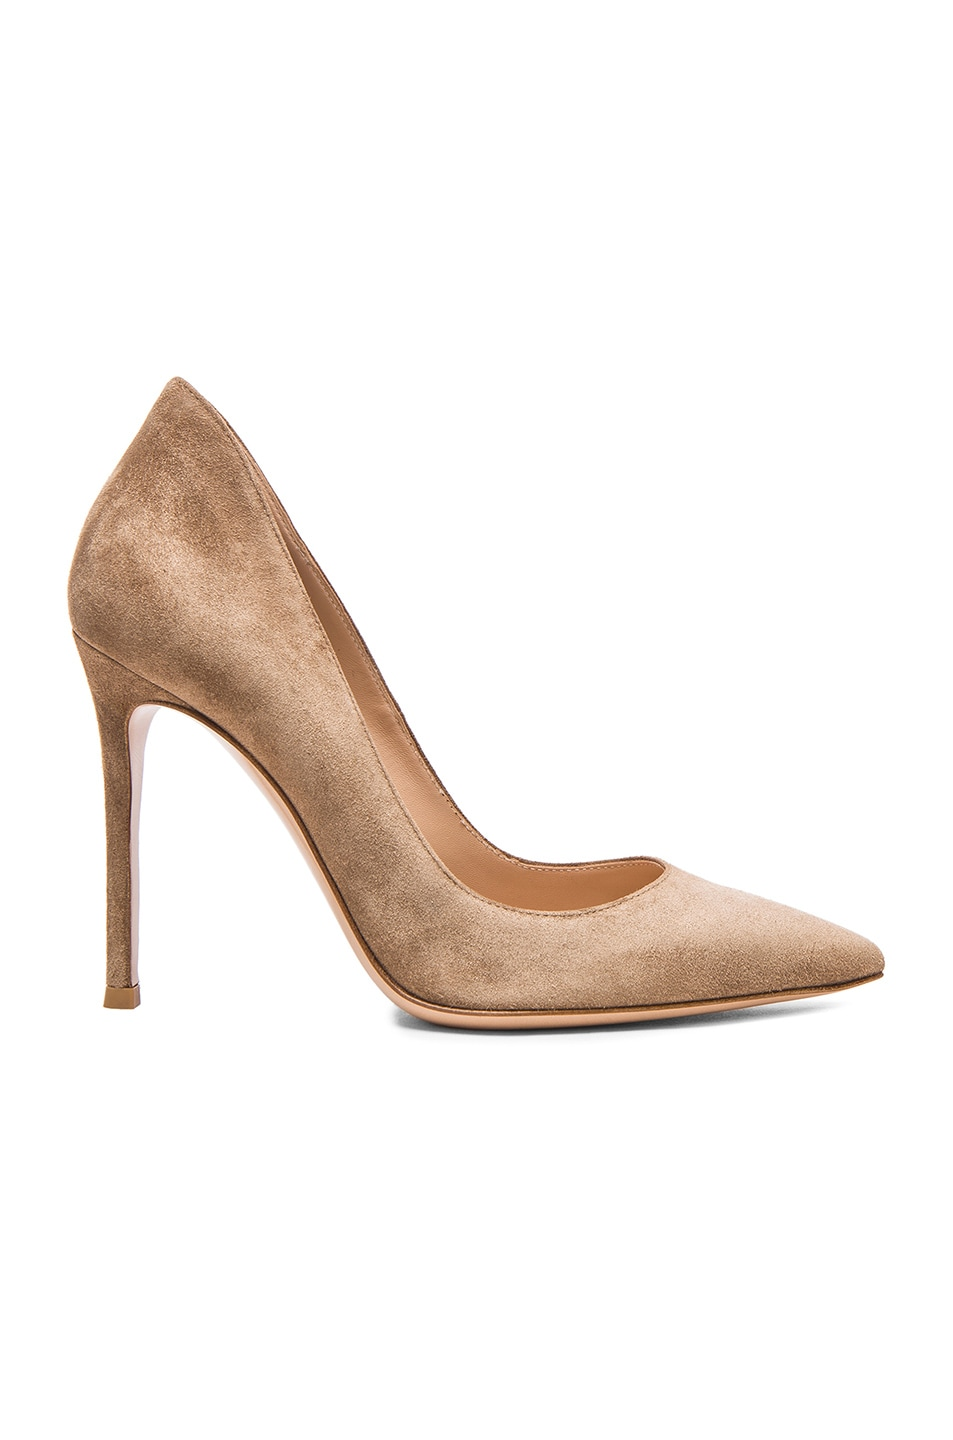 Image 1 of Gianvito Rossi Suede Gianvito Pumps in Bisque